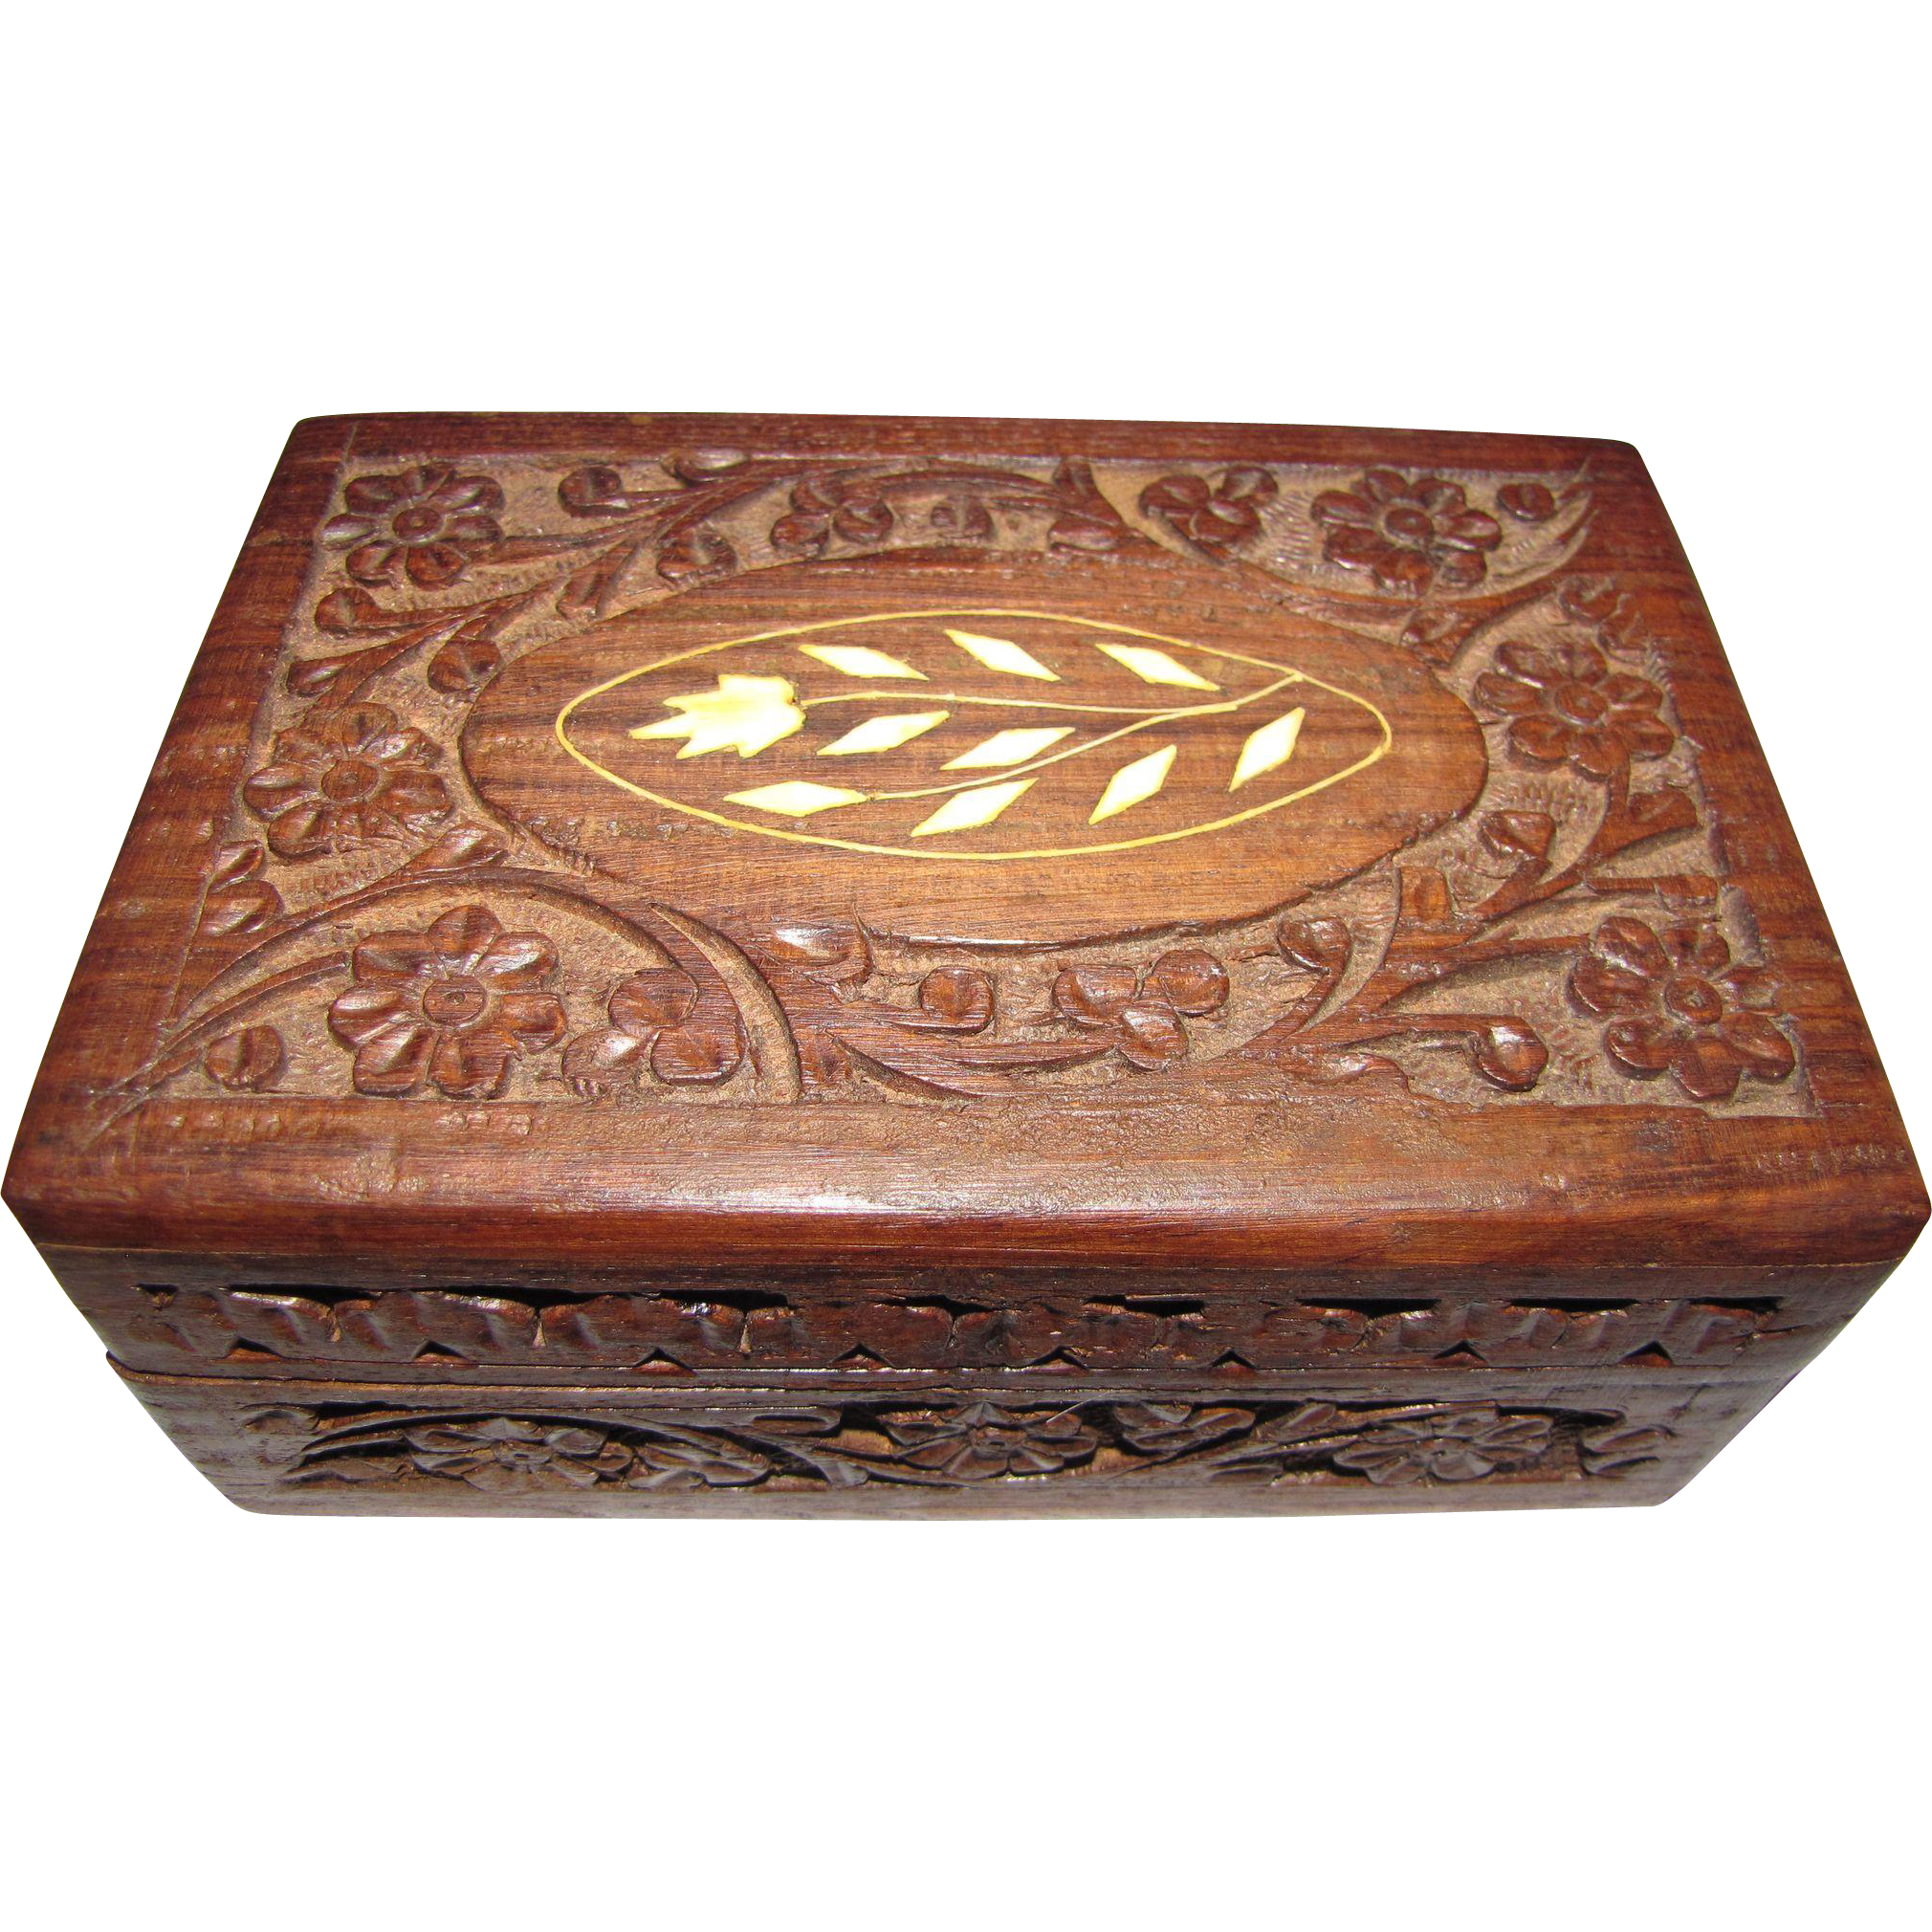 Hand Carved Indian Wooden Jewelry Box With Bone Inlay From